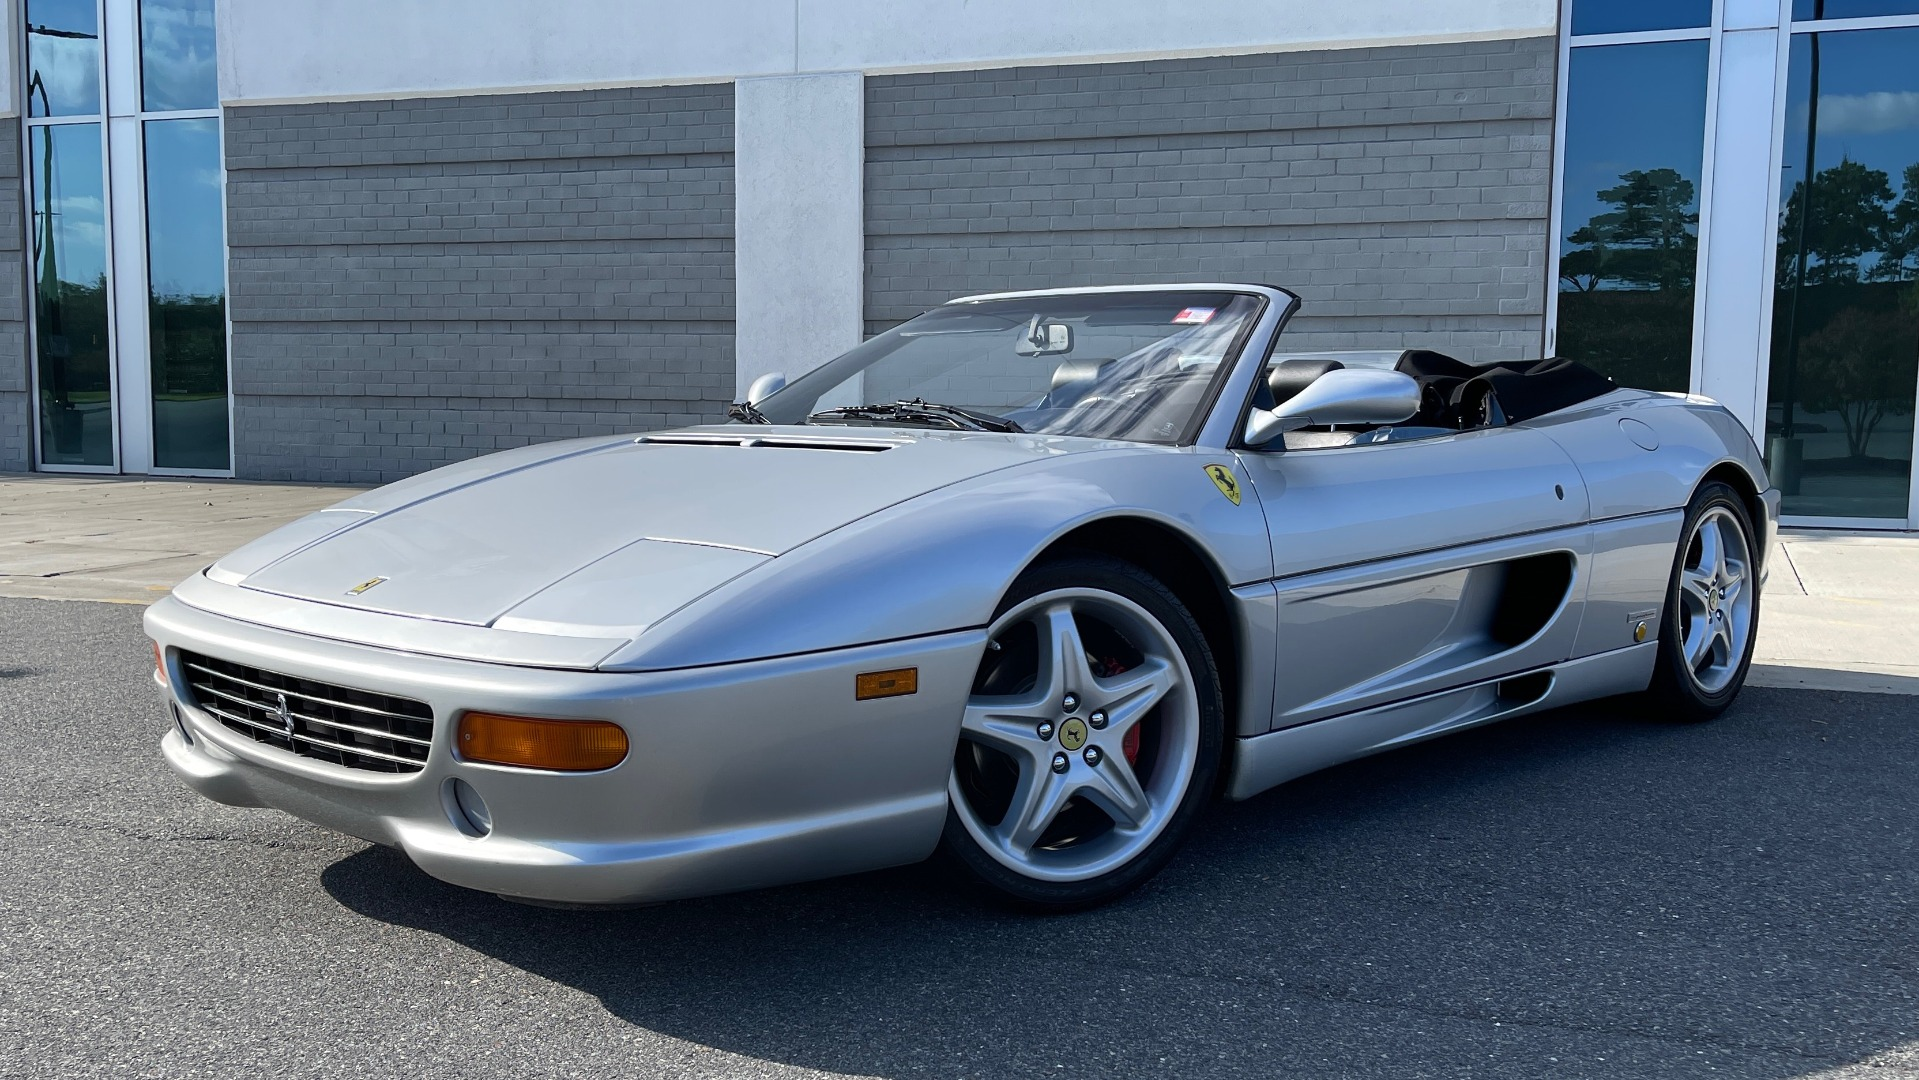 Used 1999 Ferrari F355 SPIDER for sale $95,000 at Formula Imports in Charlotte NC 28227 2